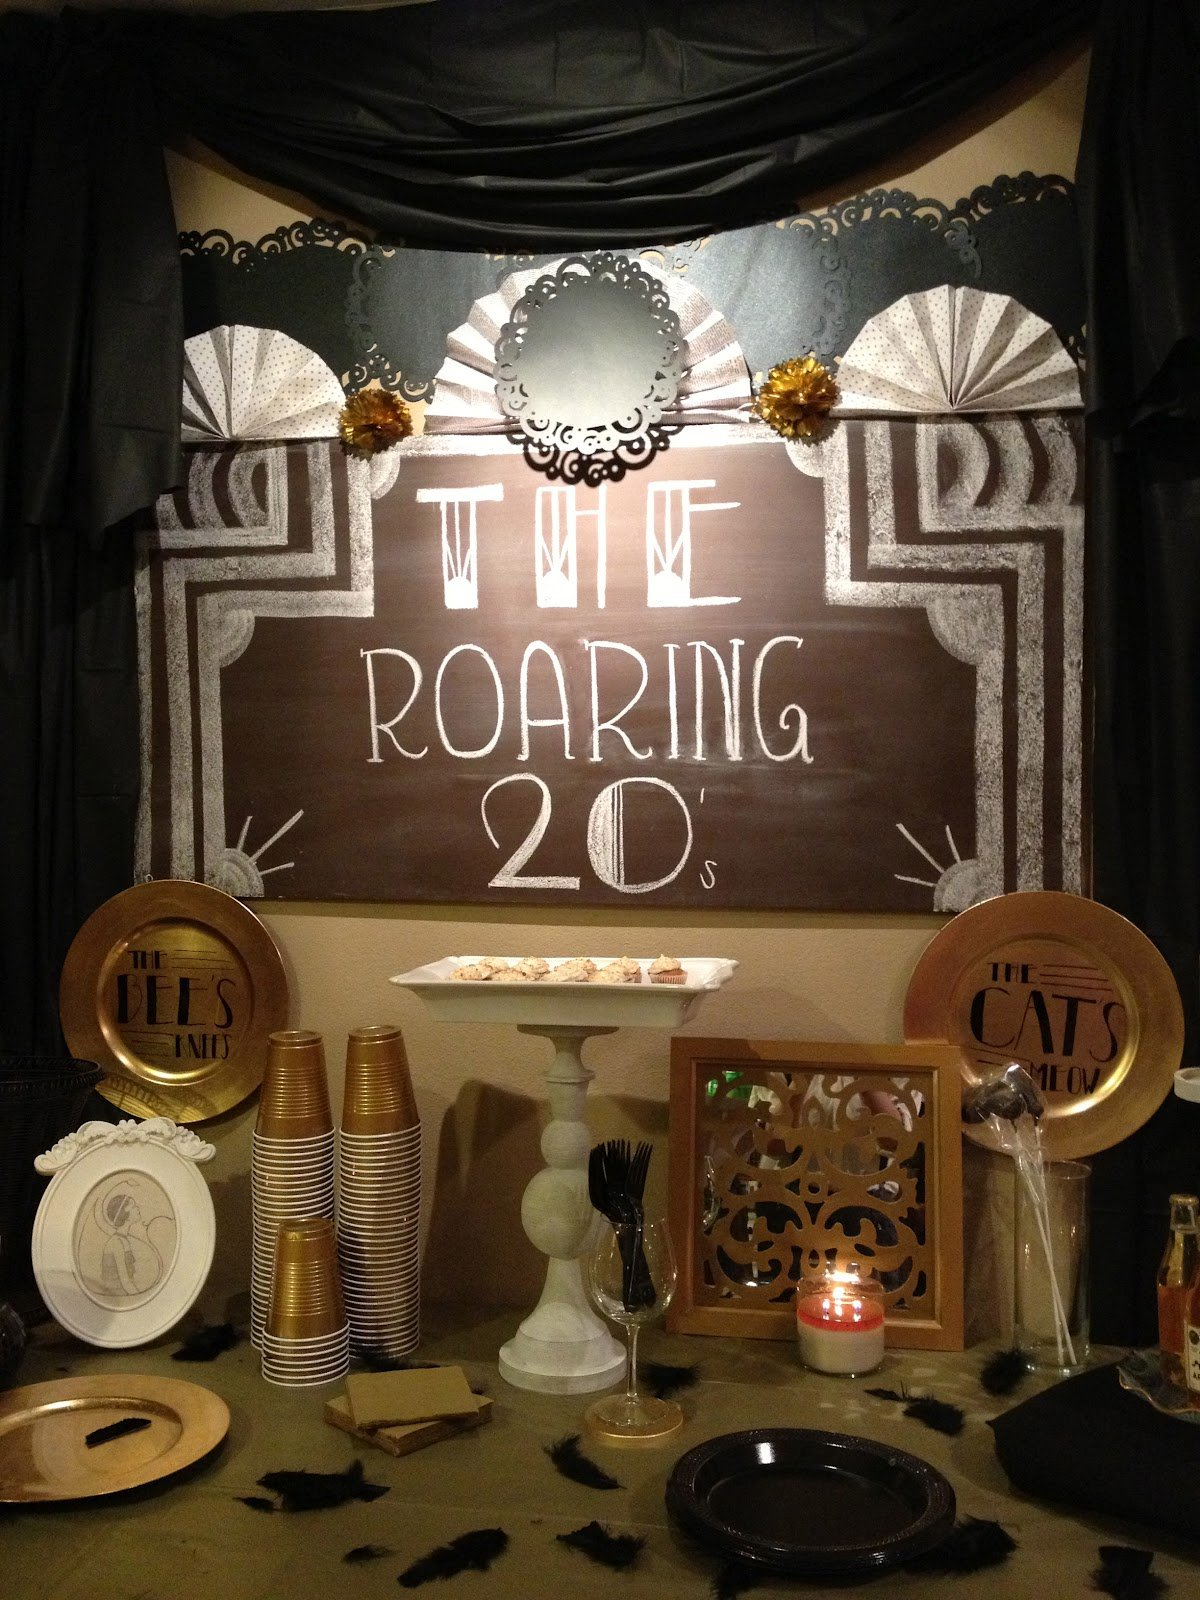 Roaring 20 s party quotes quotesgram for 1920 party decoration ideas